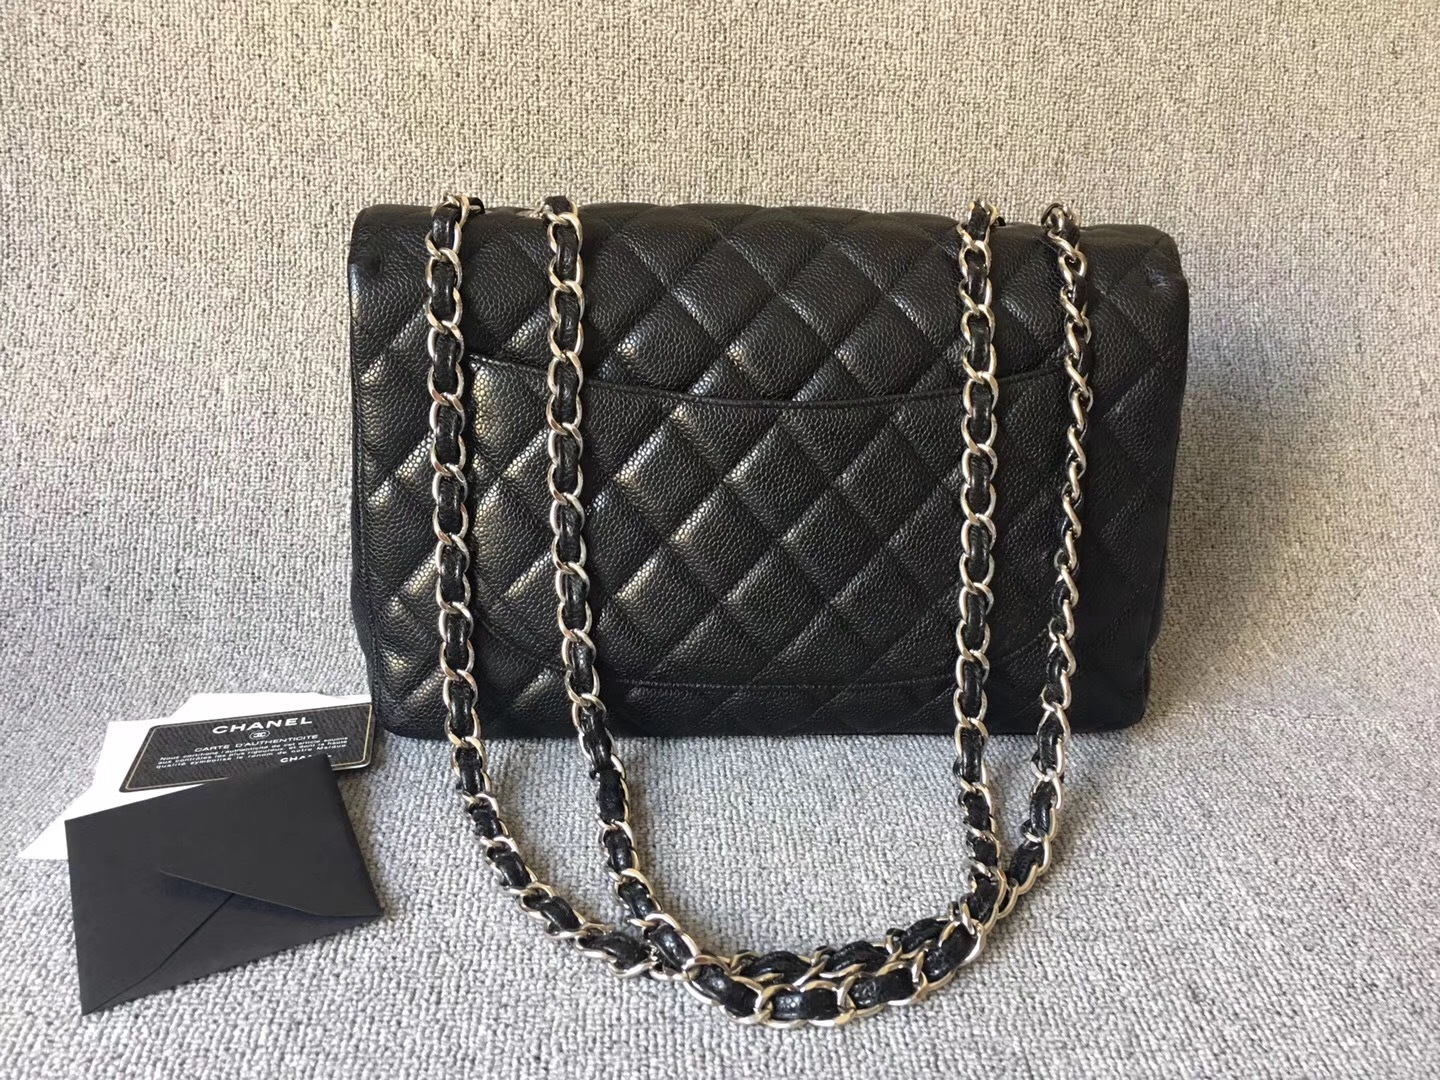 dd133255a80e AUTHENTIC CHANEL BLACK CAVIAR QUILTED JUMBO SINGLE FLAP BAG SILVER ...